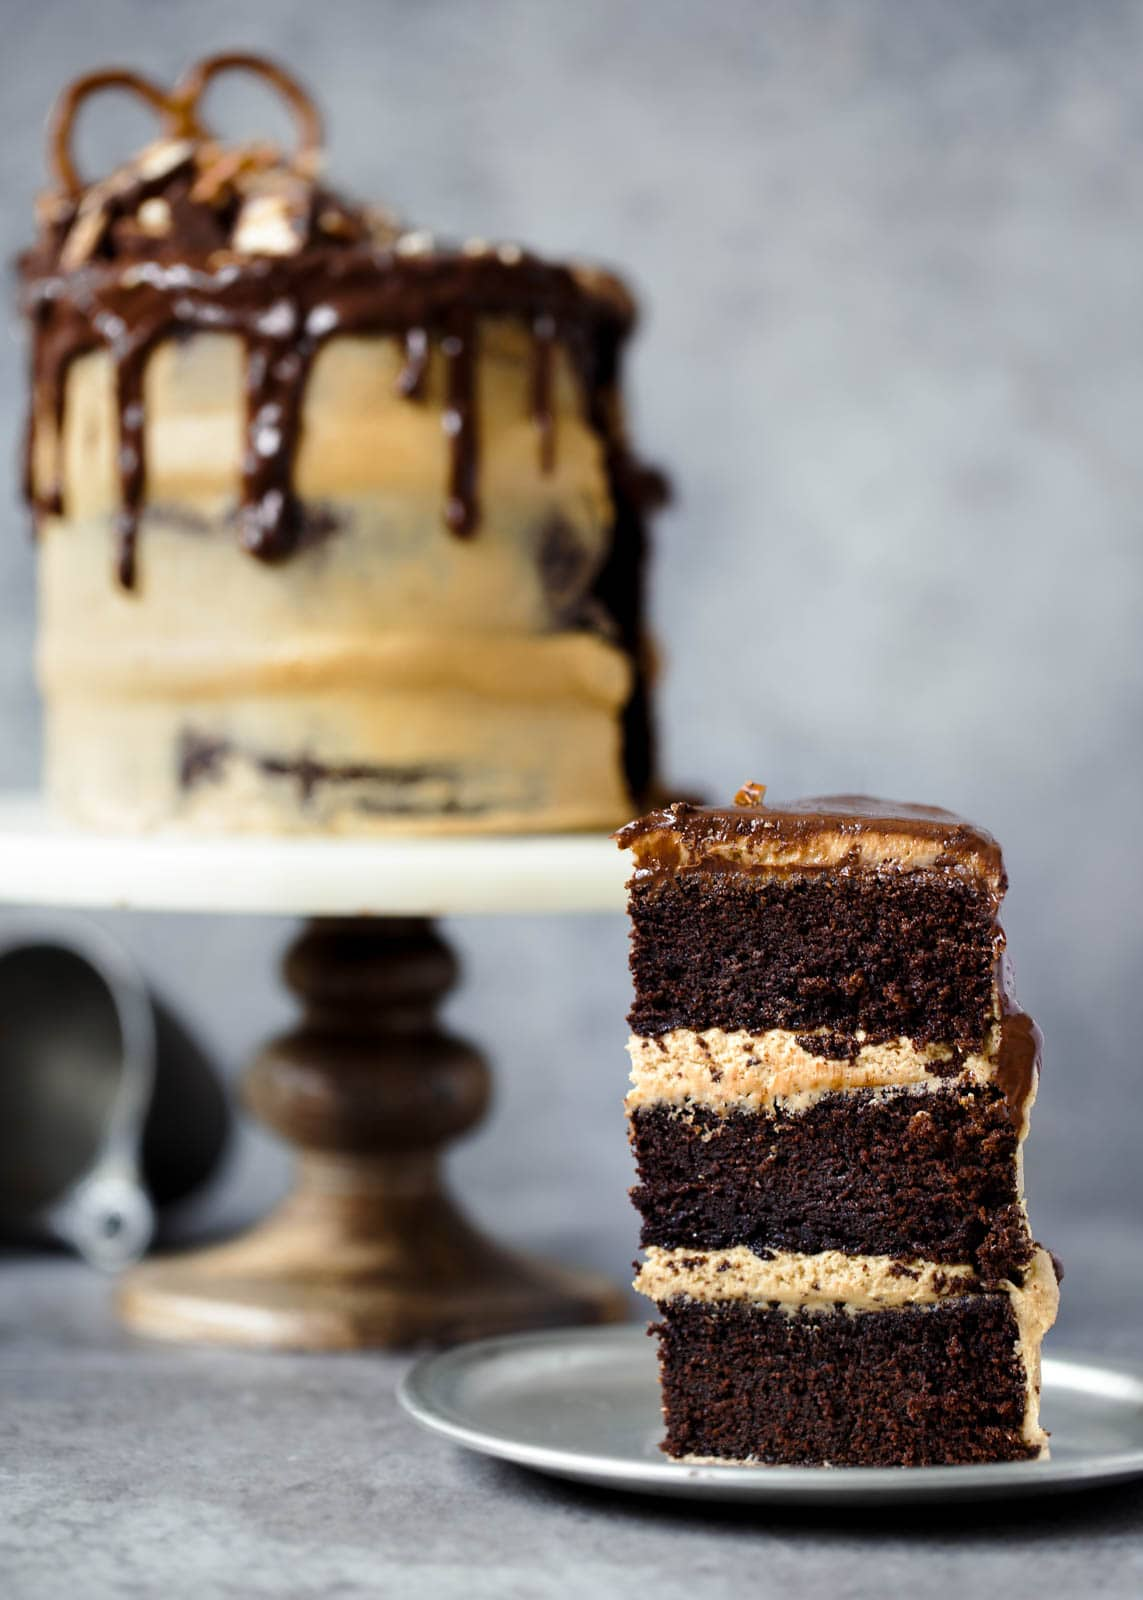 slice of Peanut Butter Chocolate Stout Cake on a plate